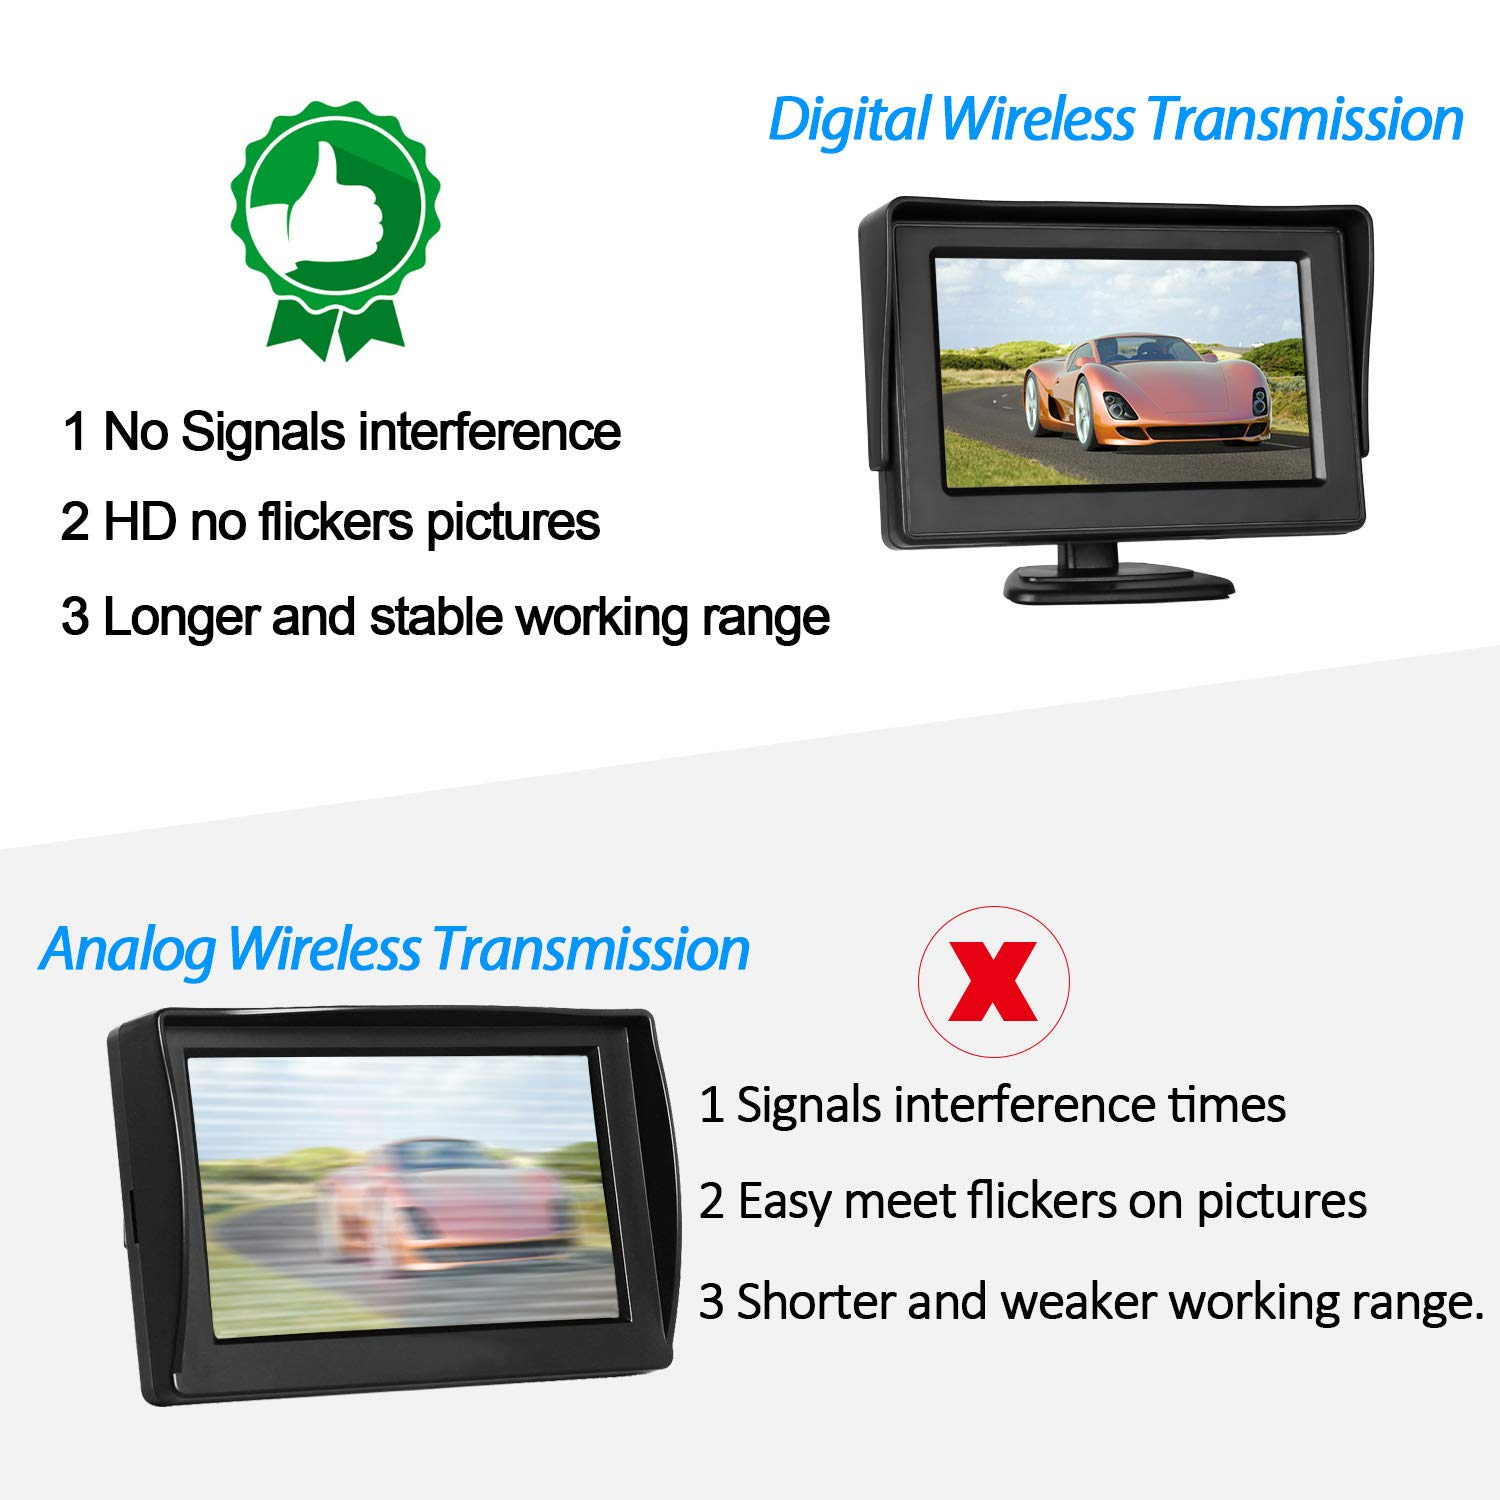 Emmako Backup Camera Digital Wireless And 43 Monitor Wiring F150 Kit No Flickers For Car Rv Truck 5th Wheel Trailer Guide Lines On Off Ip68 Waterproof